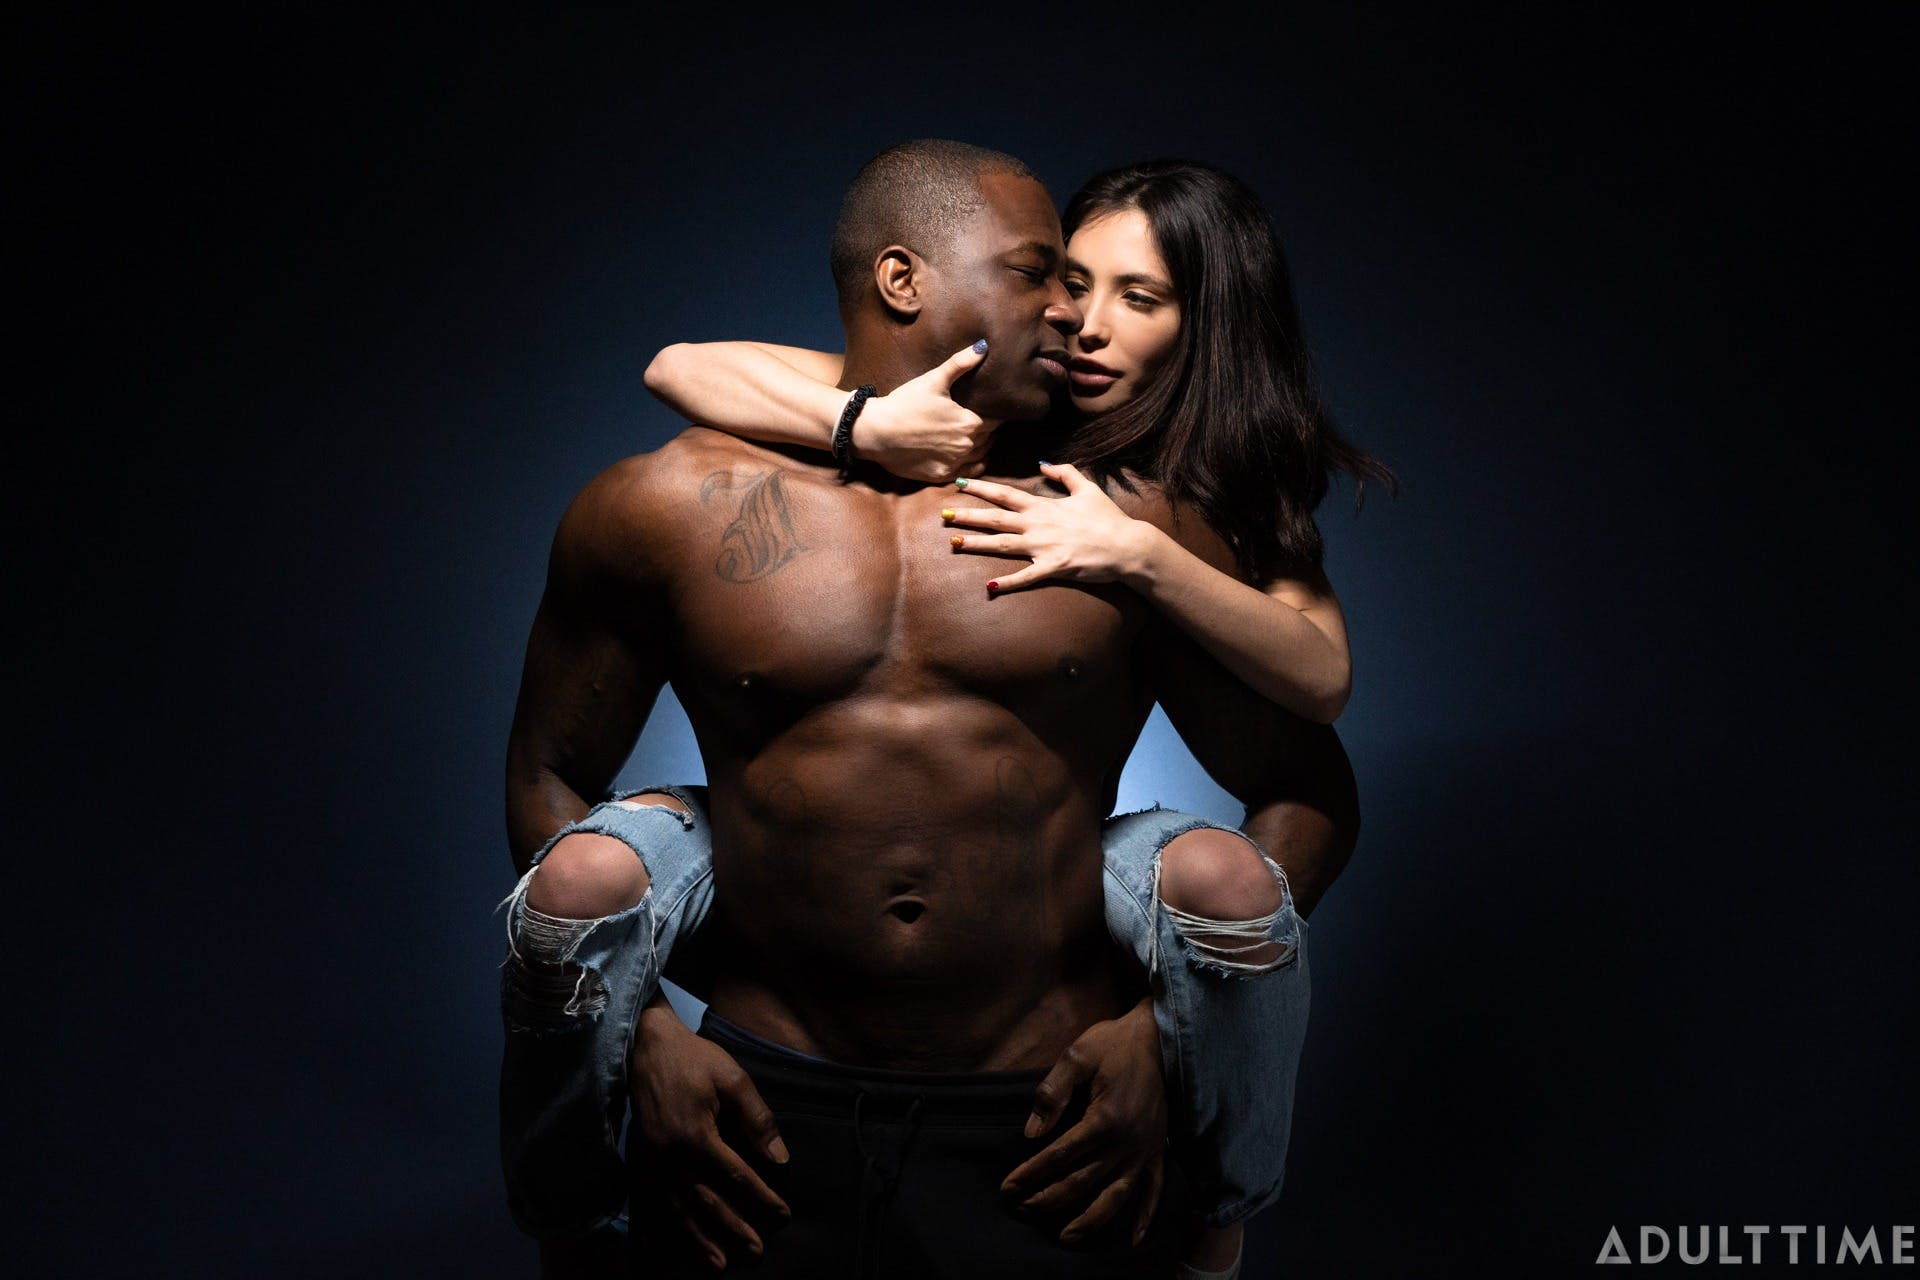 An image showing a topless man carrying a woman on his shoulders.